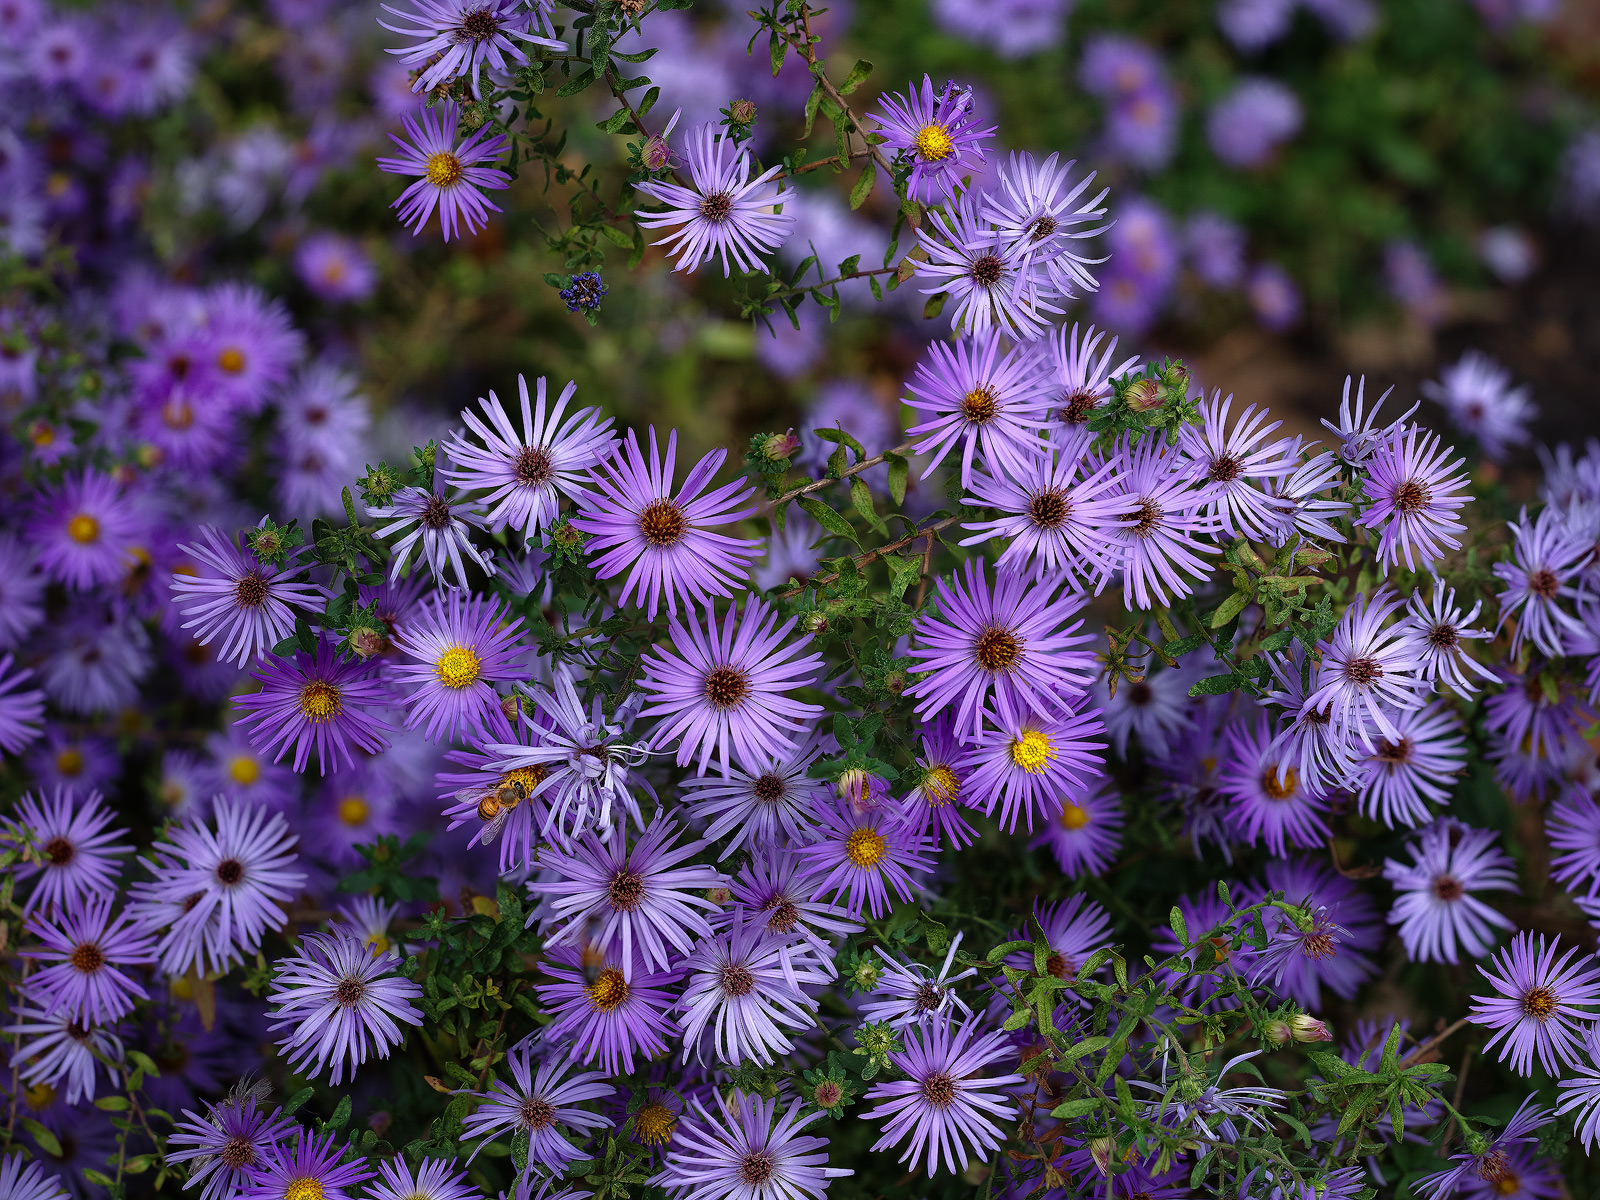 lavender, flowers, purple, nature, Houston, Texas, bee, nature, asters, photo